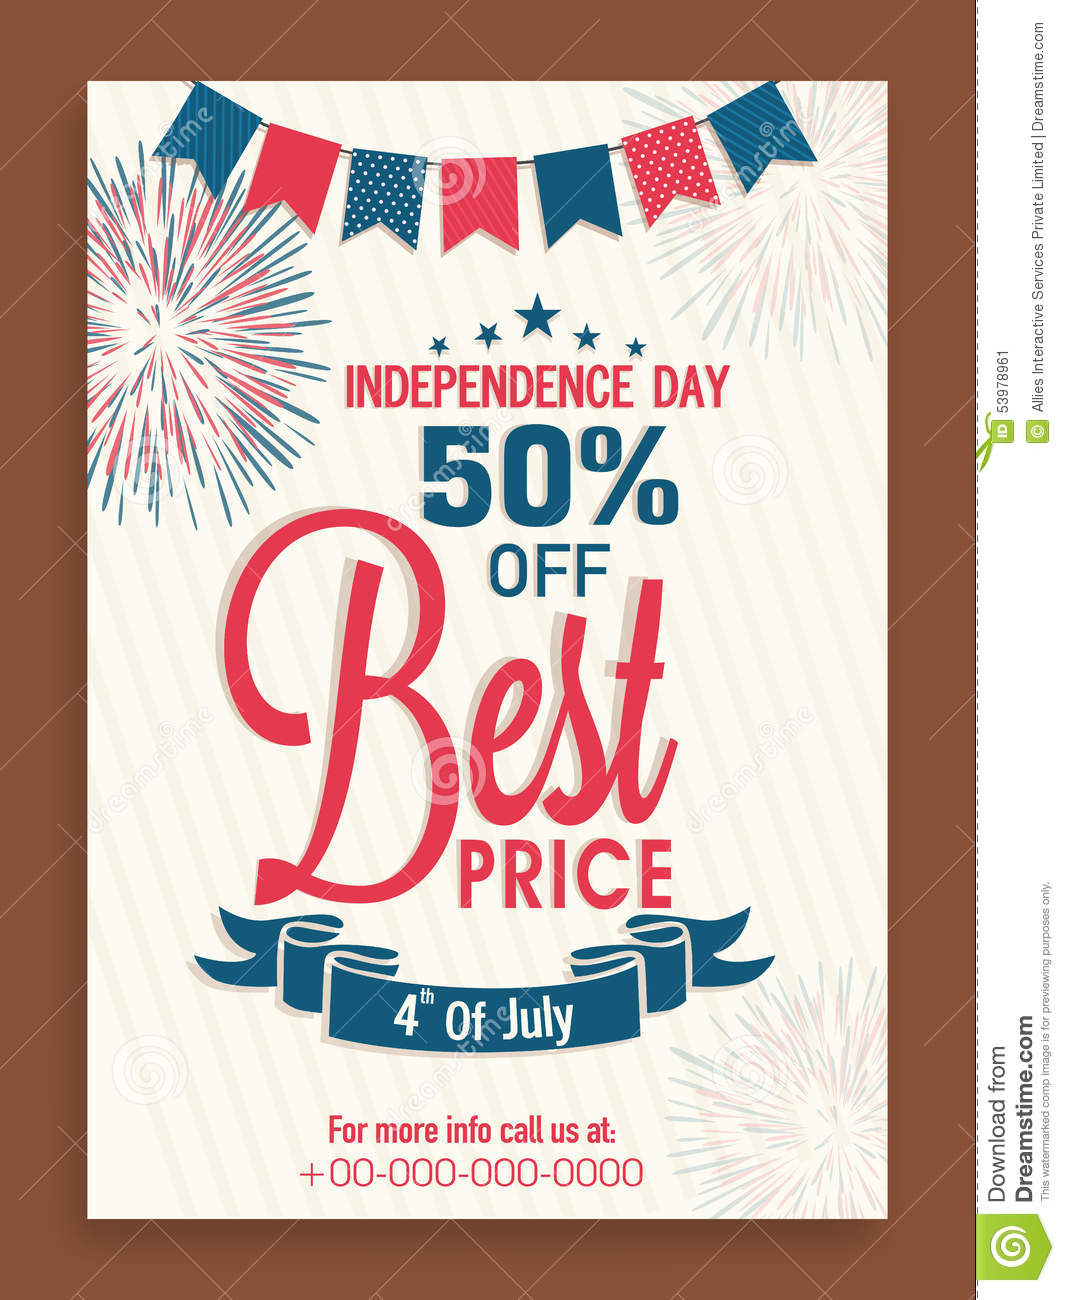 flyer or template for american independence day celebration flyer or template for american independence day celebration